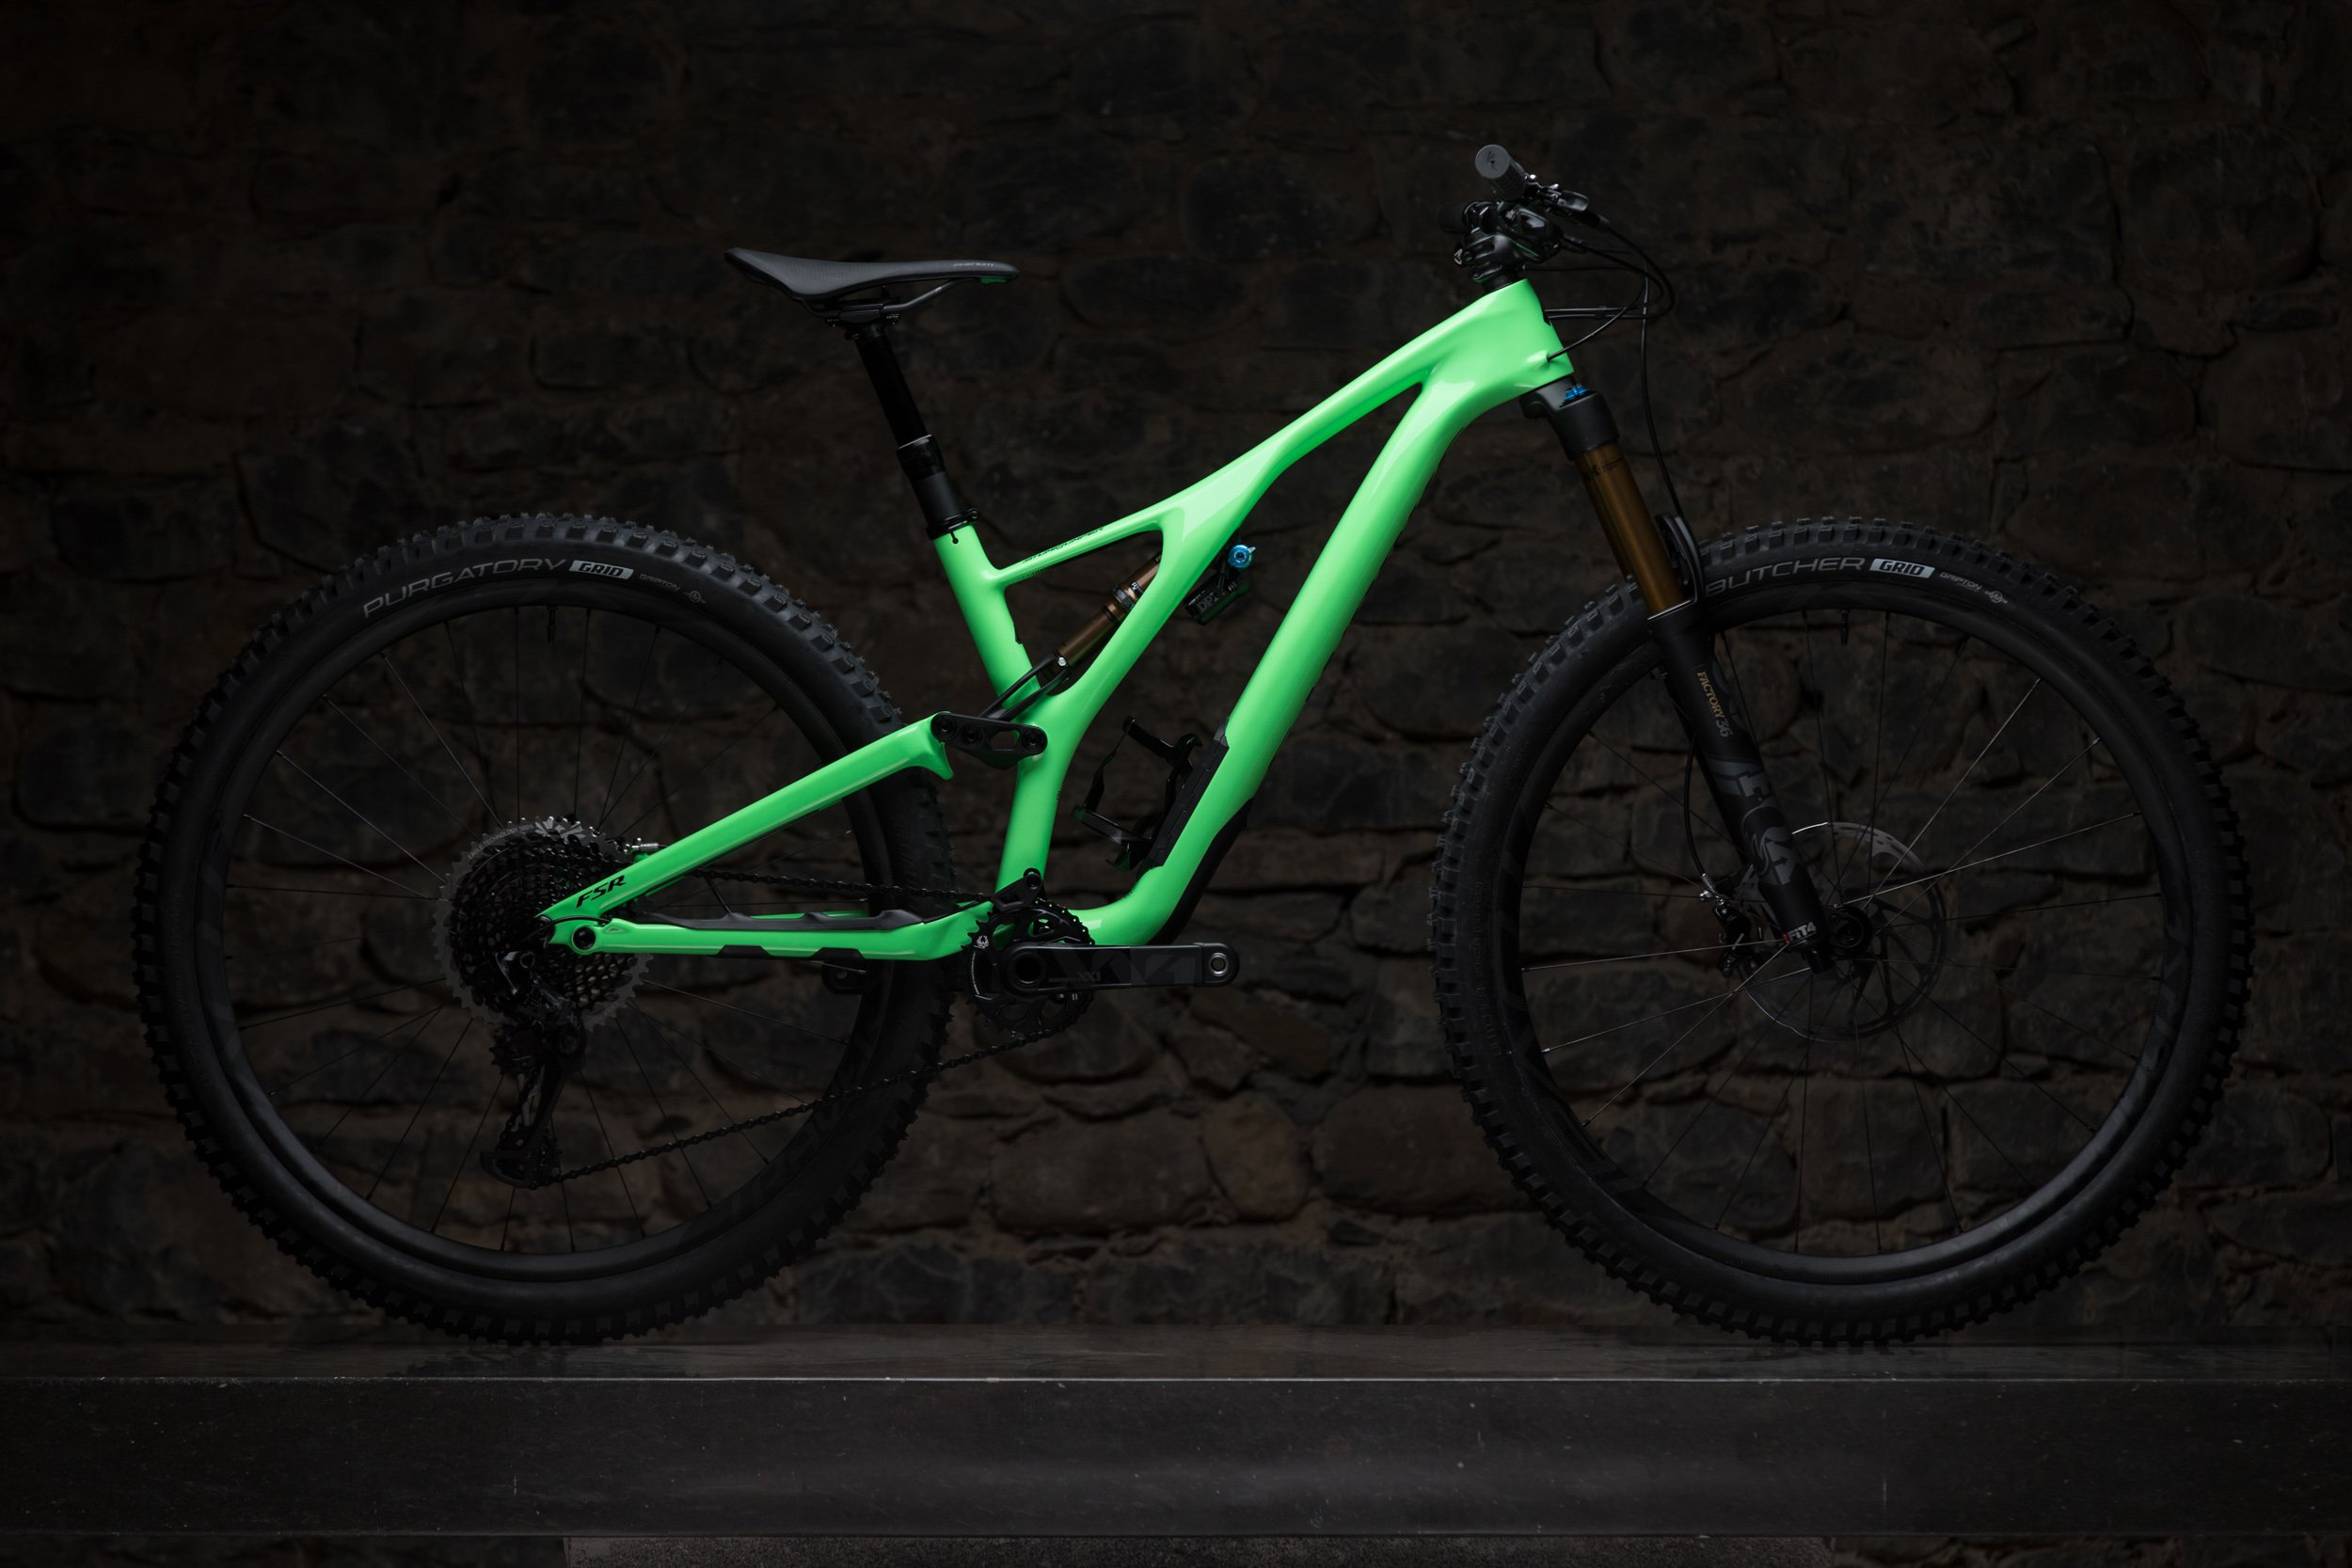 2018 Specialized Stumpjumper S-Works